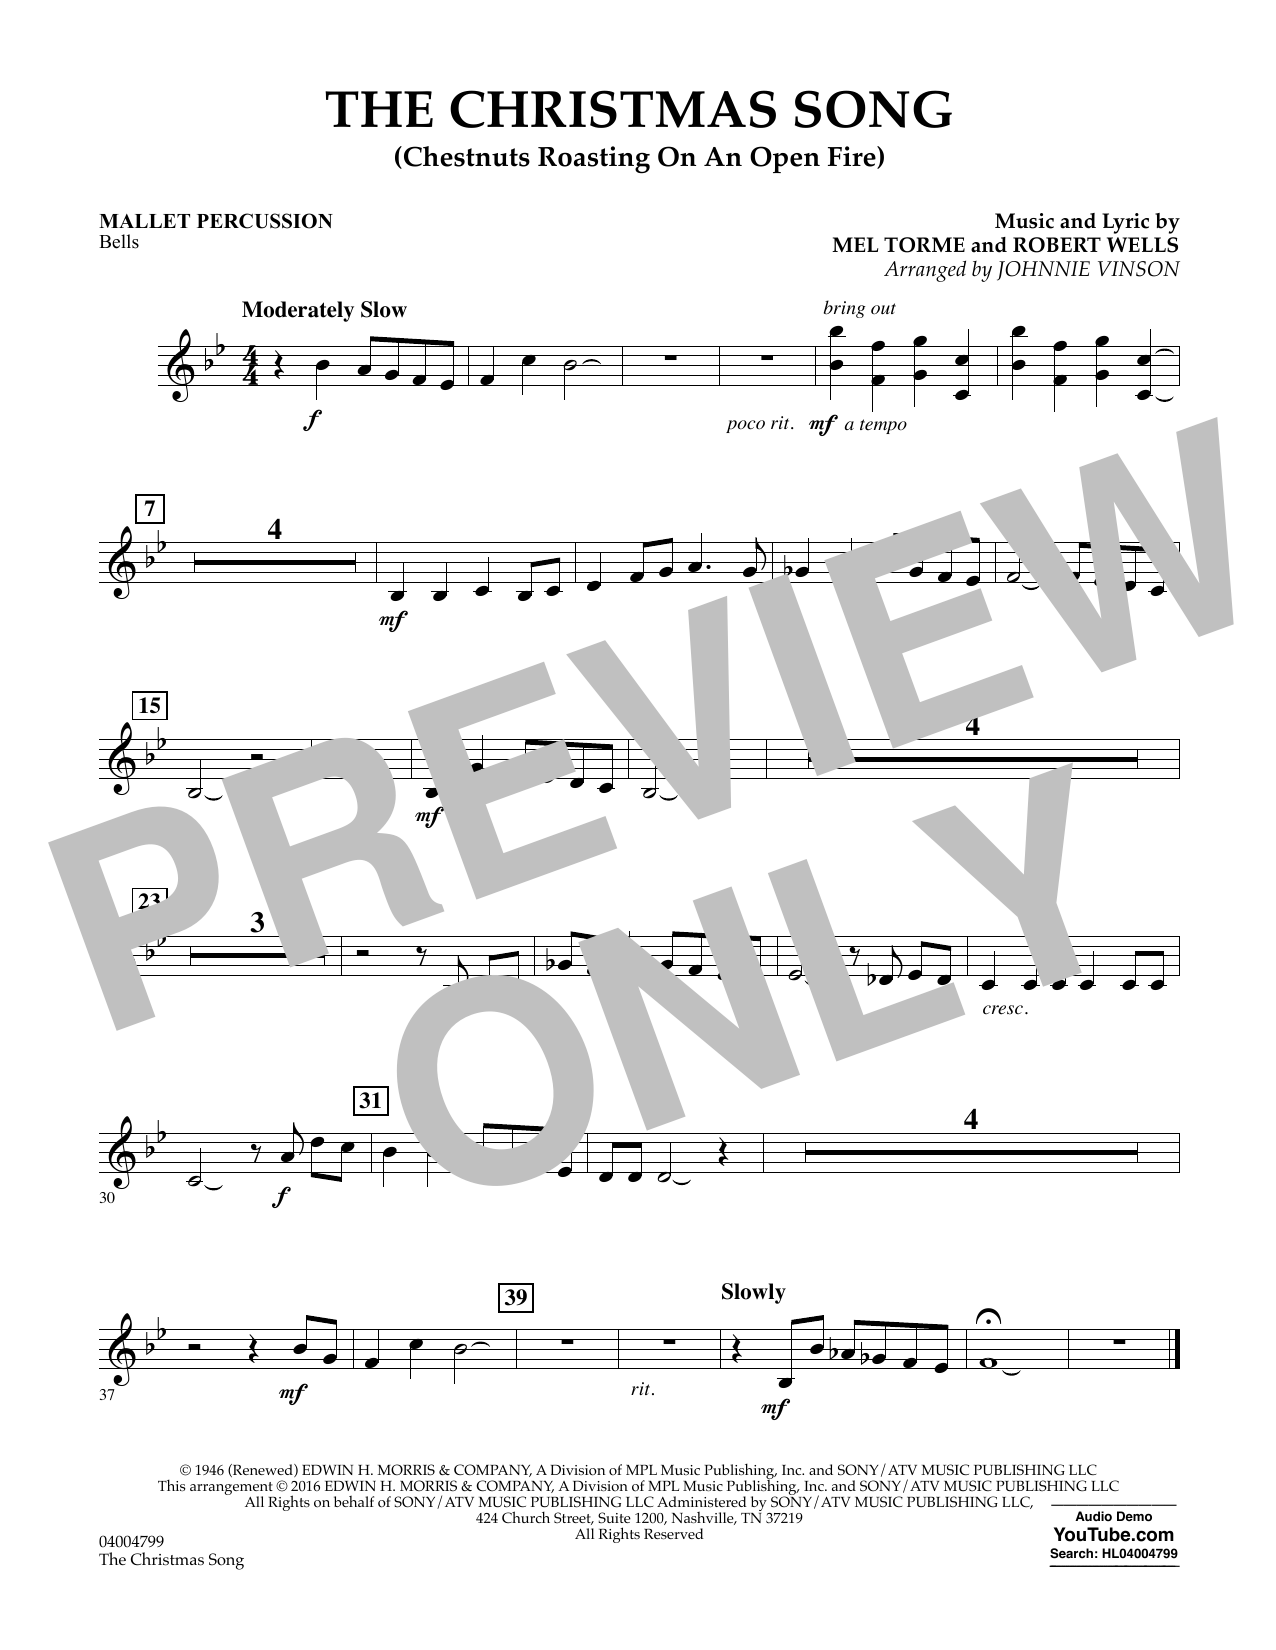 The Christmas Song (Chestnuts Roasting on an Open Fire) - Mallet Percussion (Concert Band)